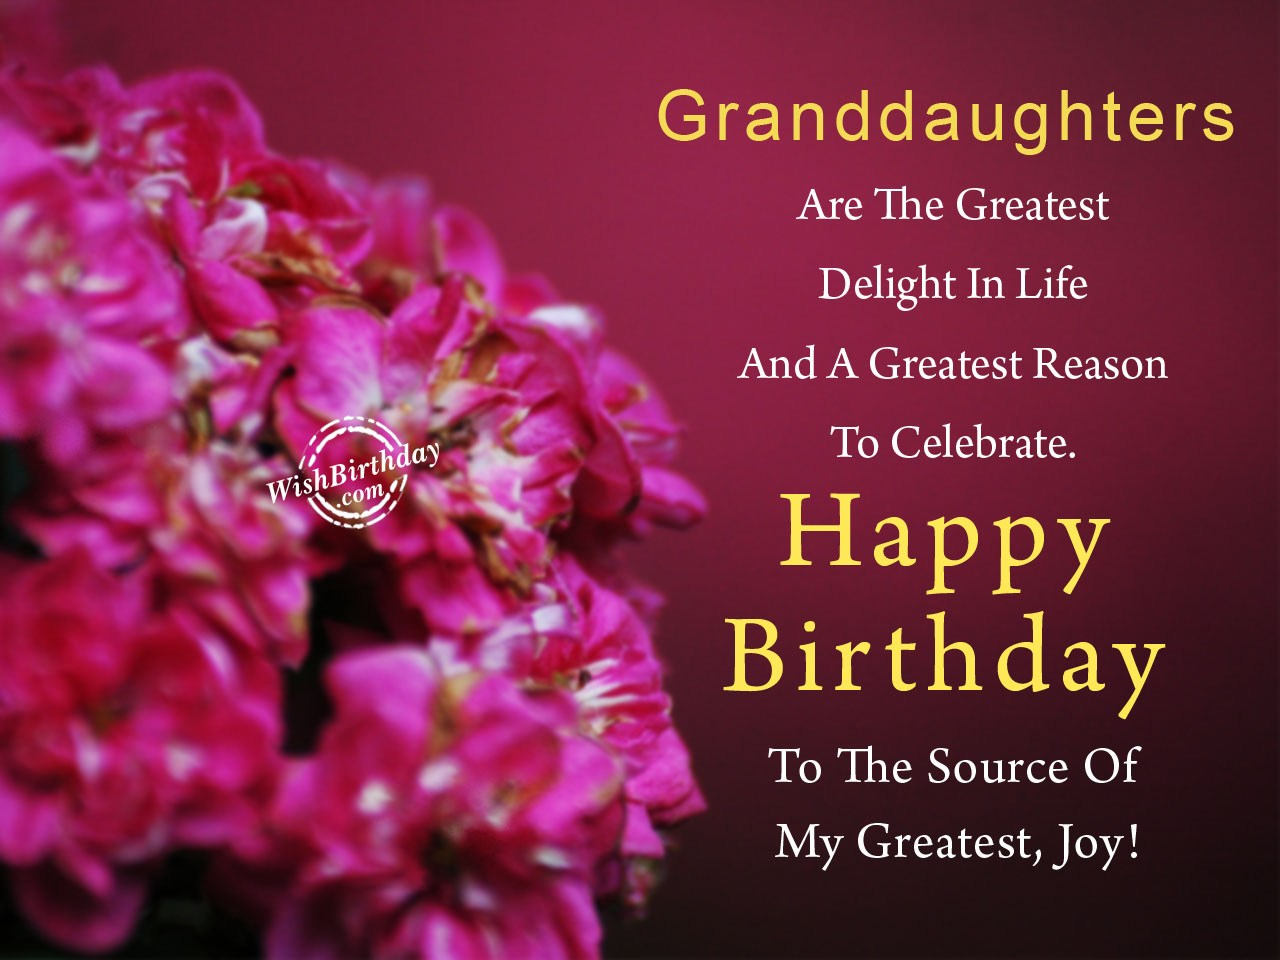 Birthday Wishes For Granddaughter Images Pictures